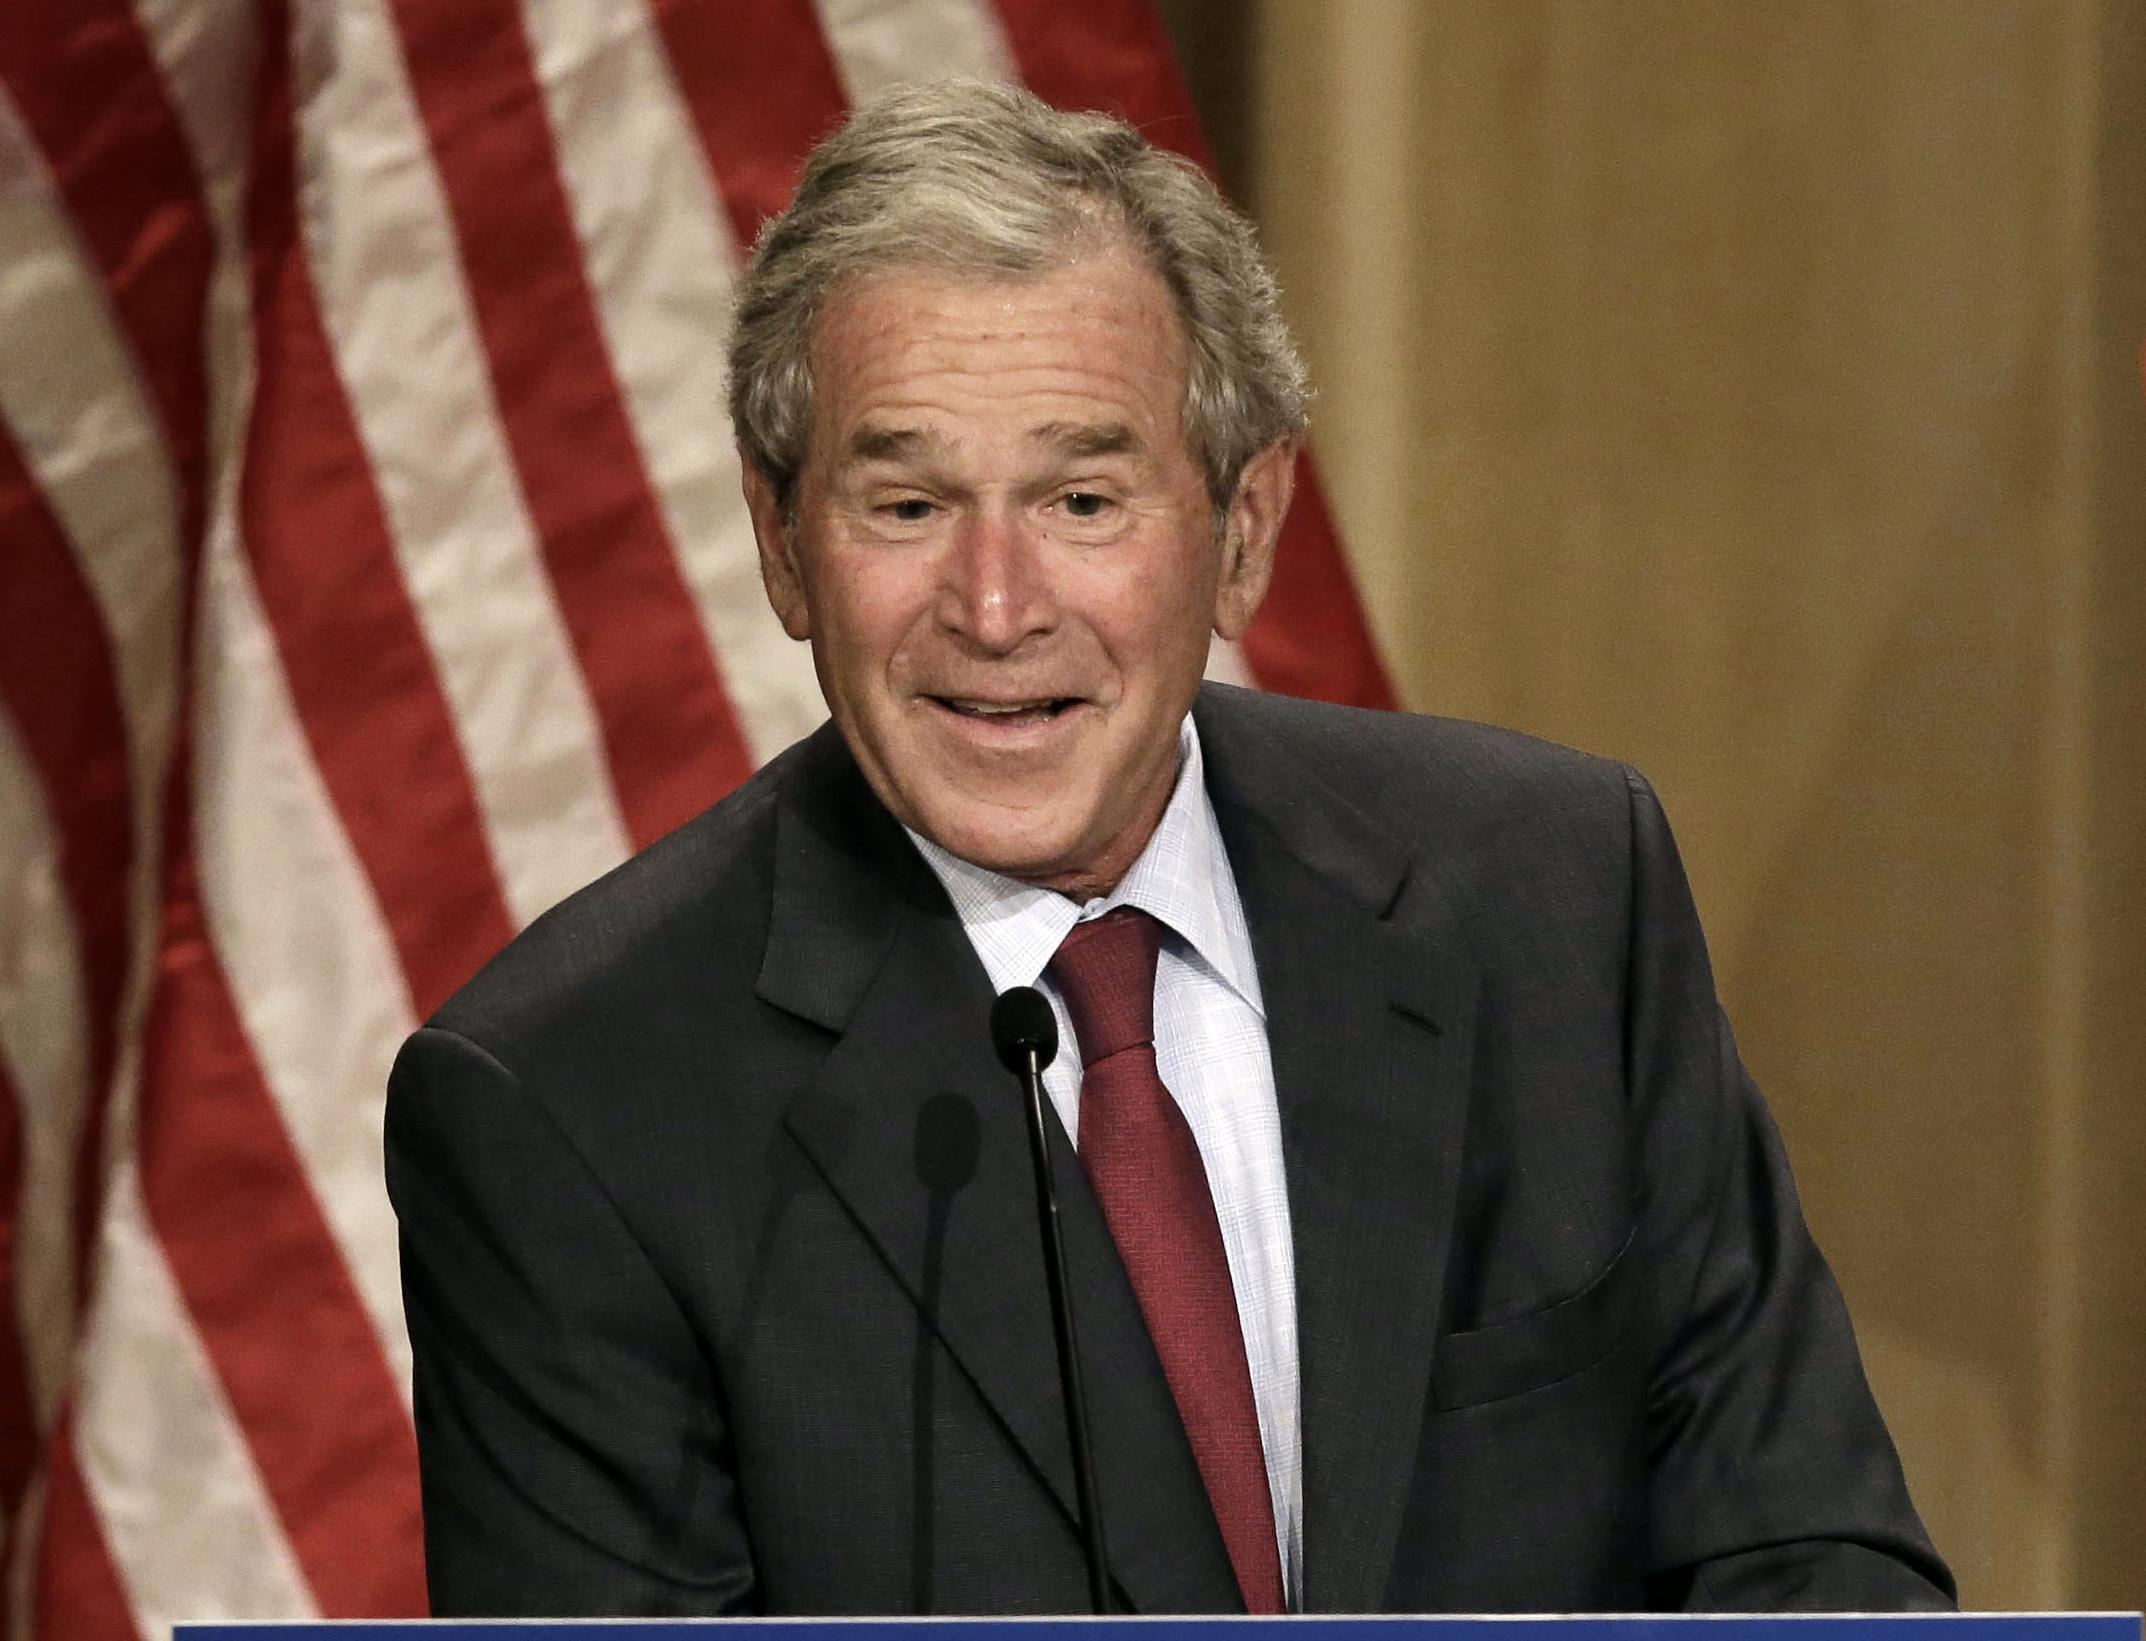 american government george w bush and christianity George w bush: george w bush president al gore in one of the closest and most-controversial elections in american history george w bush, in full george.